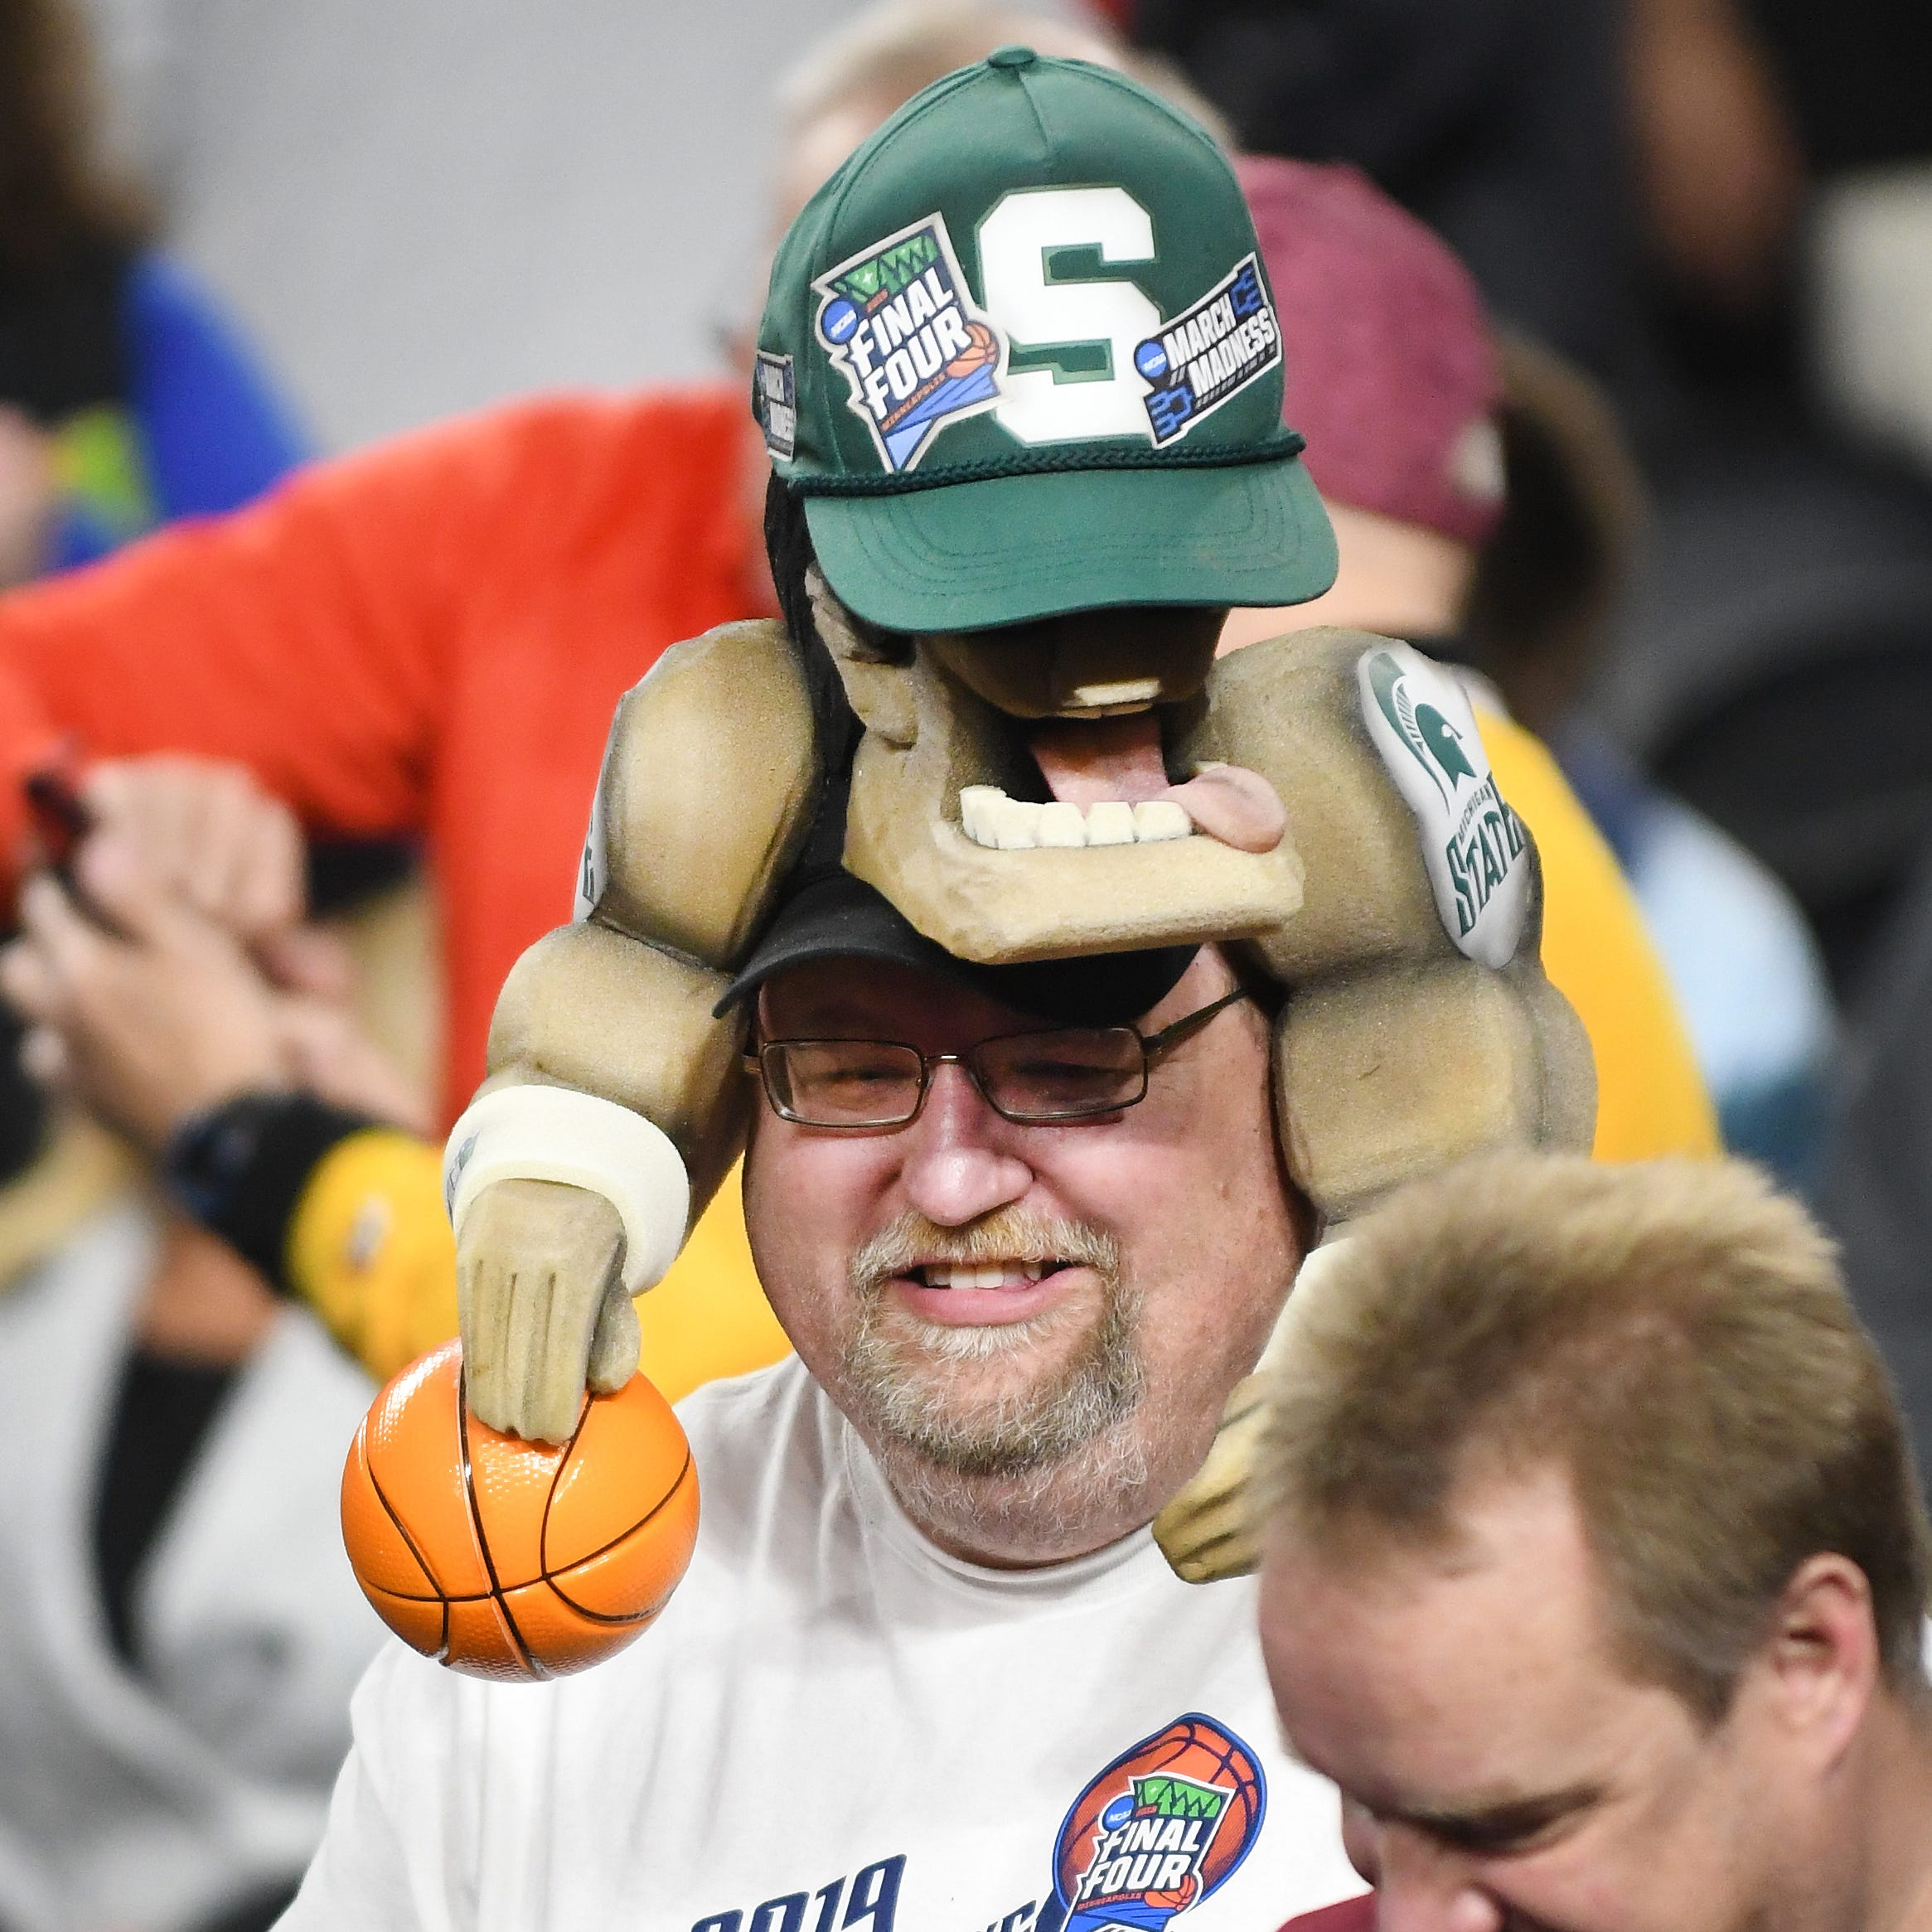 'It's huge': About 5,000 fans enjoy Michigan State Final Four practice